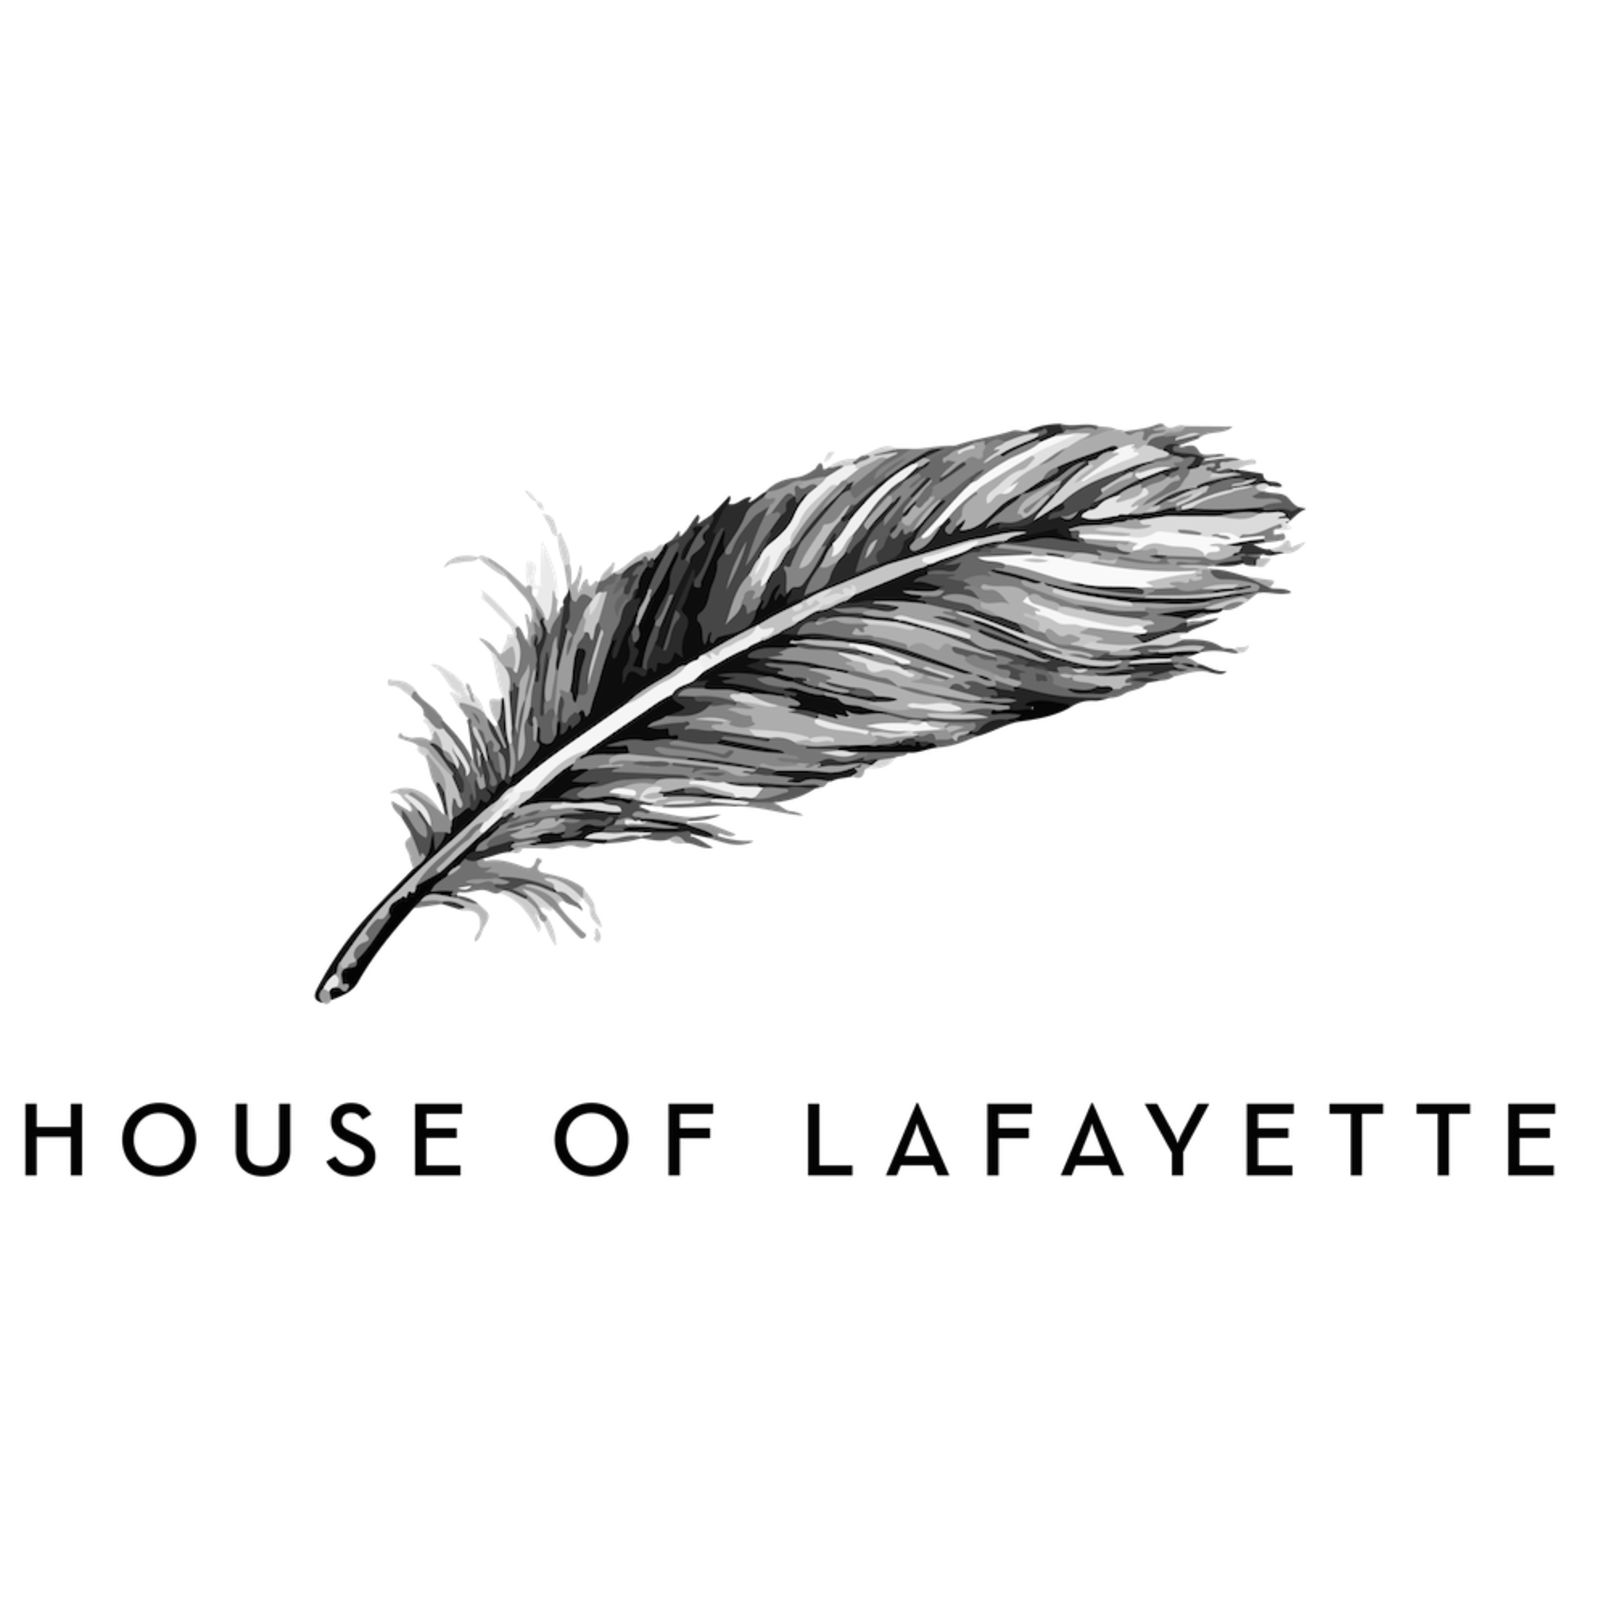 HOUSE OF LAFAYETTE